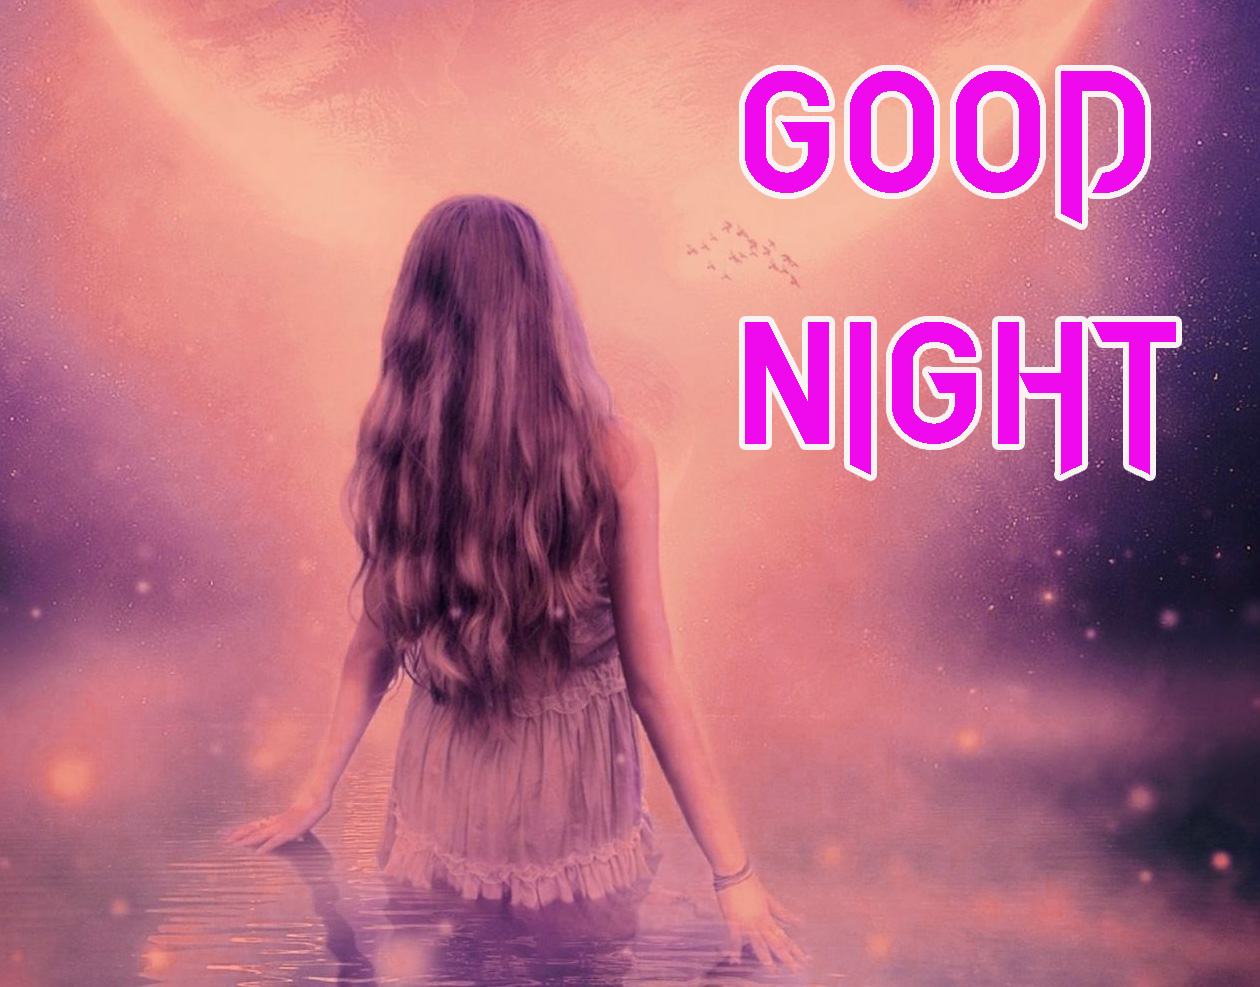 GOOD NIGHT IMAGES FOR LOVER / LOVE COUPLE  IMAGES WALLPAPER PIC DOWNLOAD